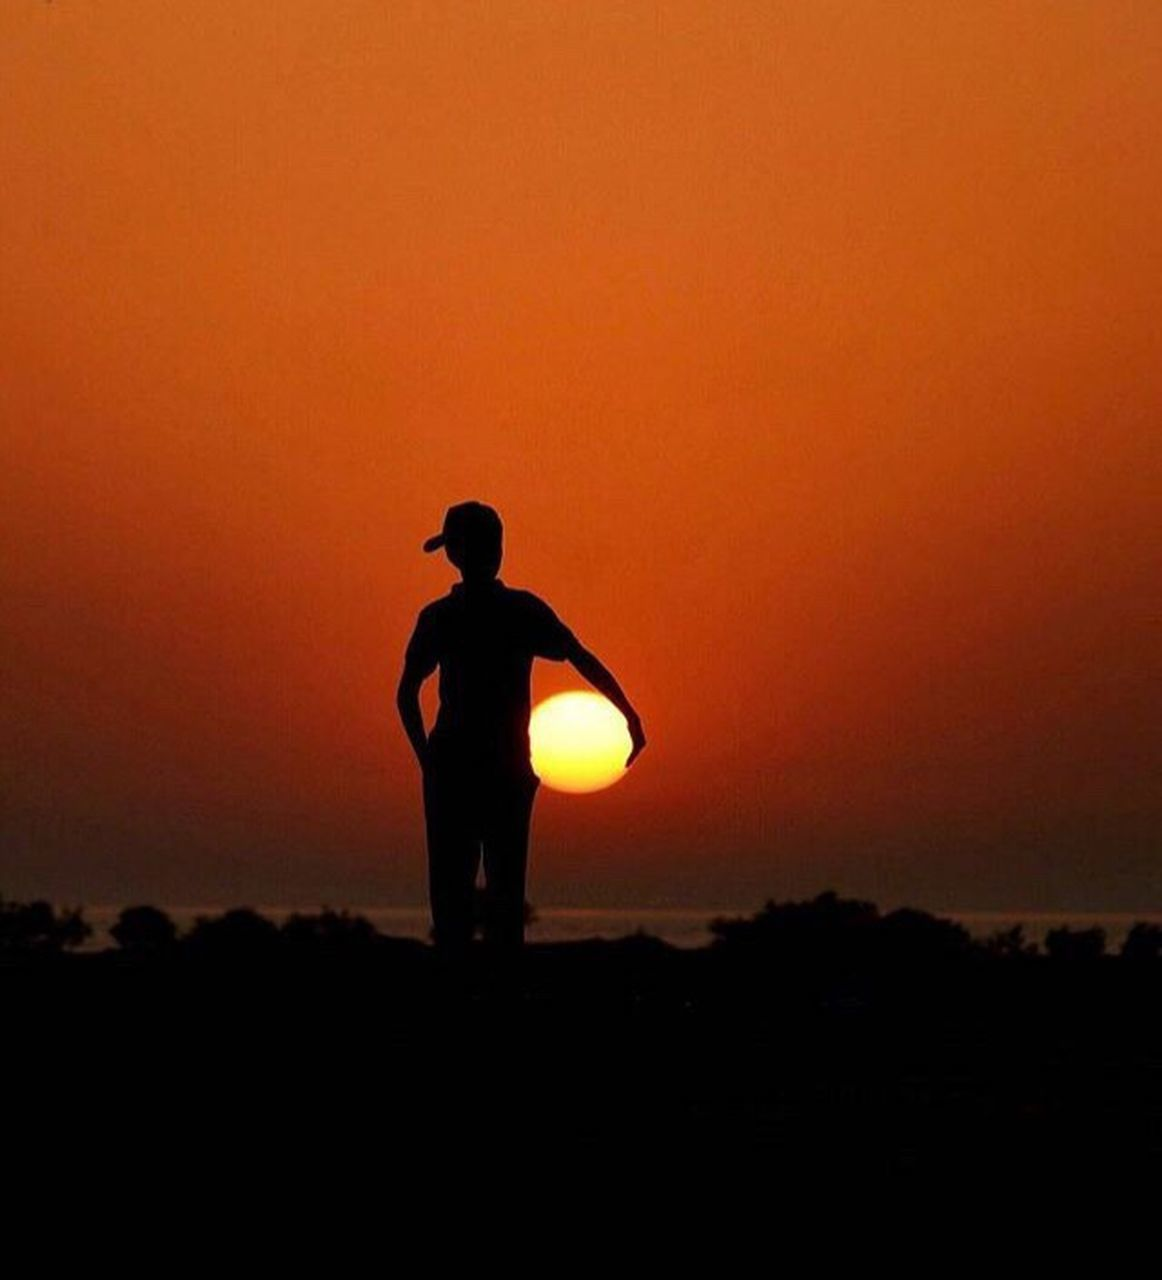 sunset, silhouette, orange color, standing, nature, outdoors, tranquility, scenics, one person, beauty in nature, tranquil scene, real people, leisure activity, men, sky, one man only, full length, adult, only men, adults only, people, day